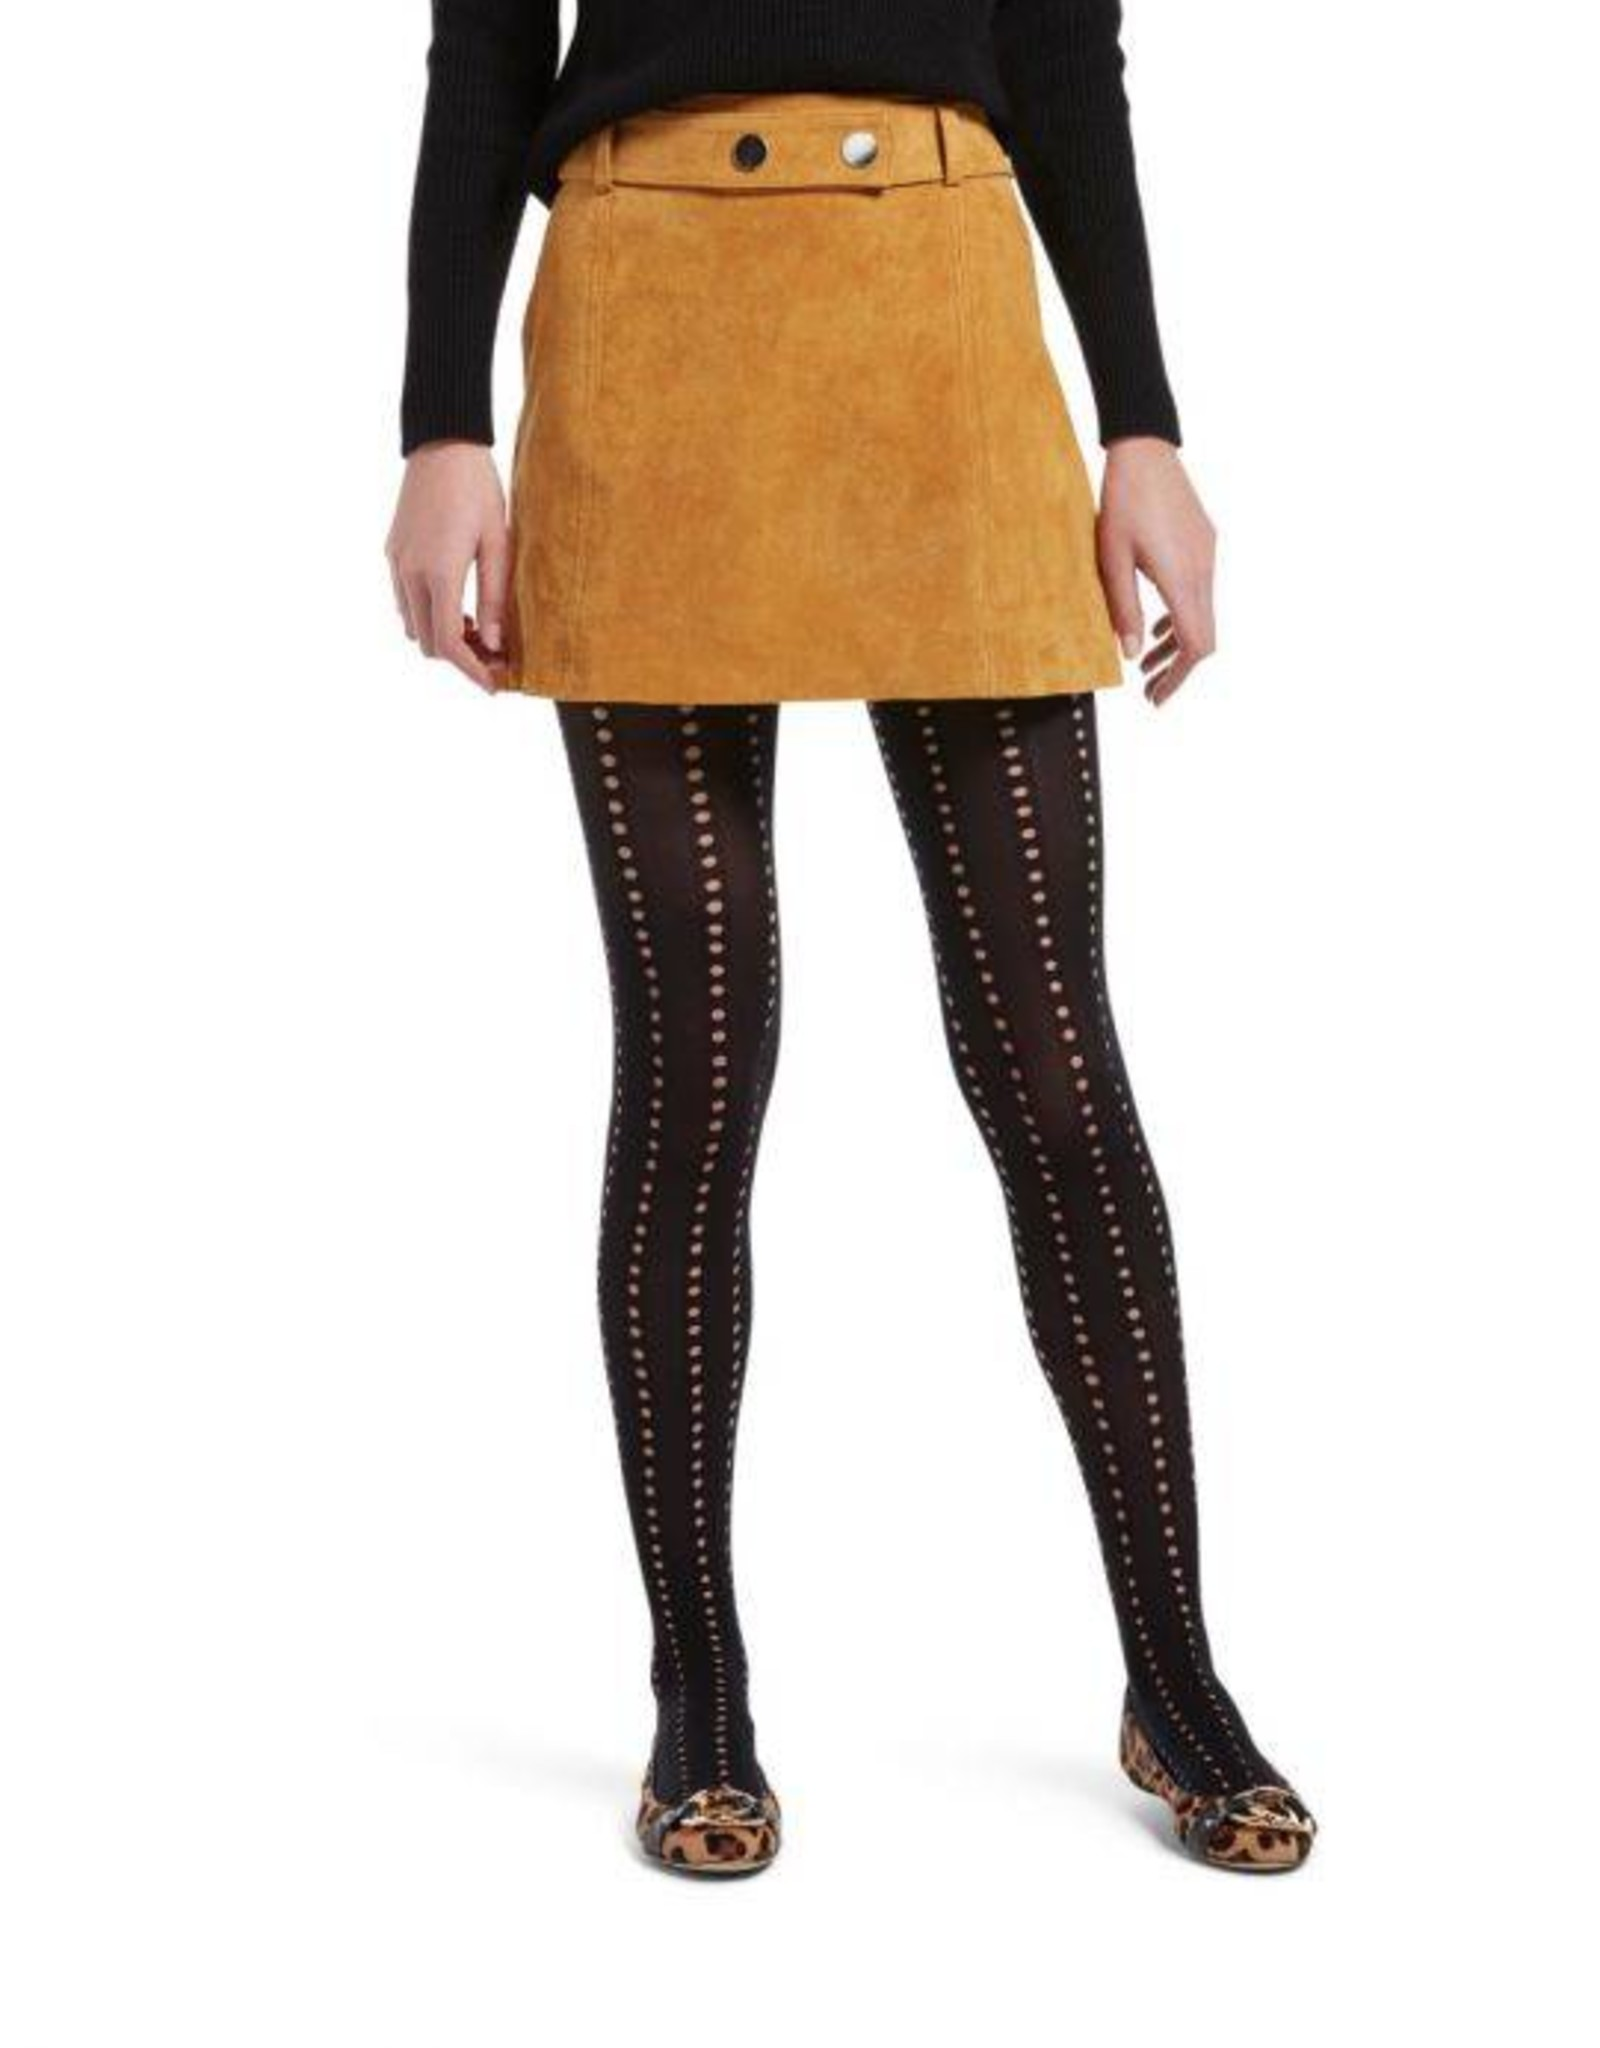 Hue HUE Eyelet Cable Tights with Control